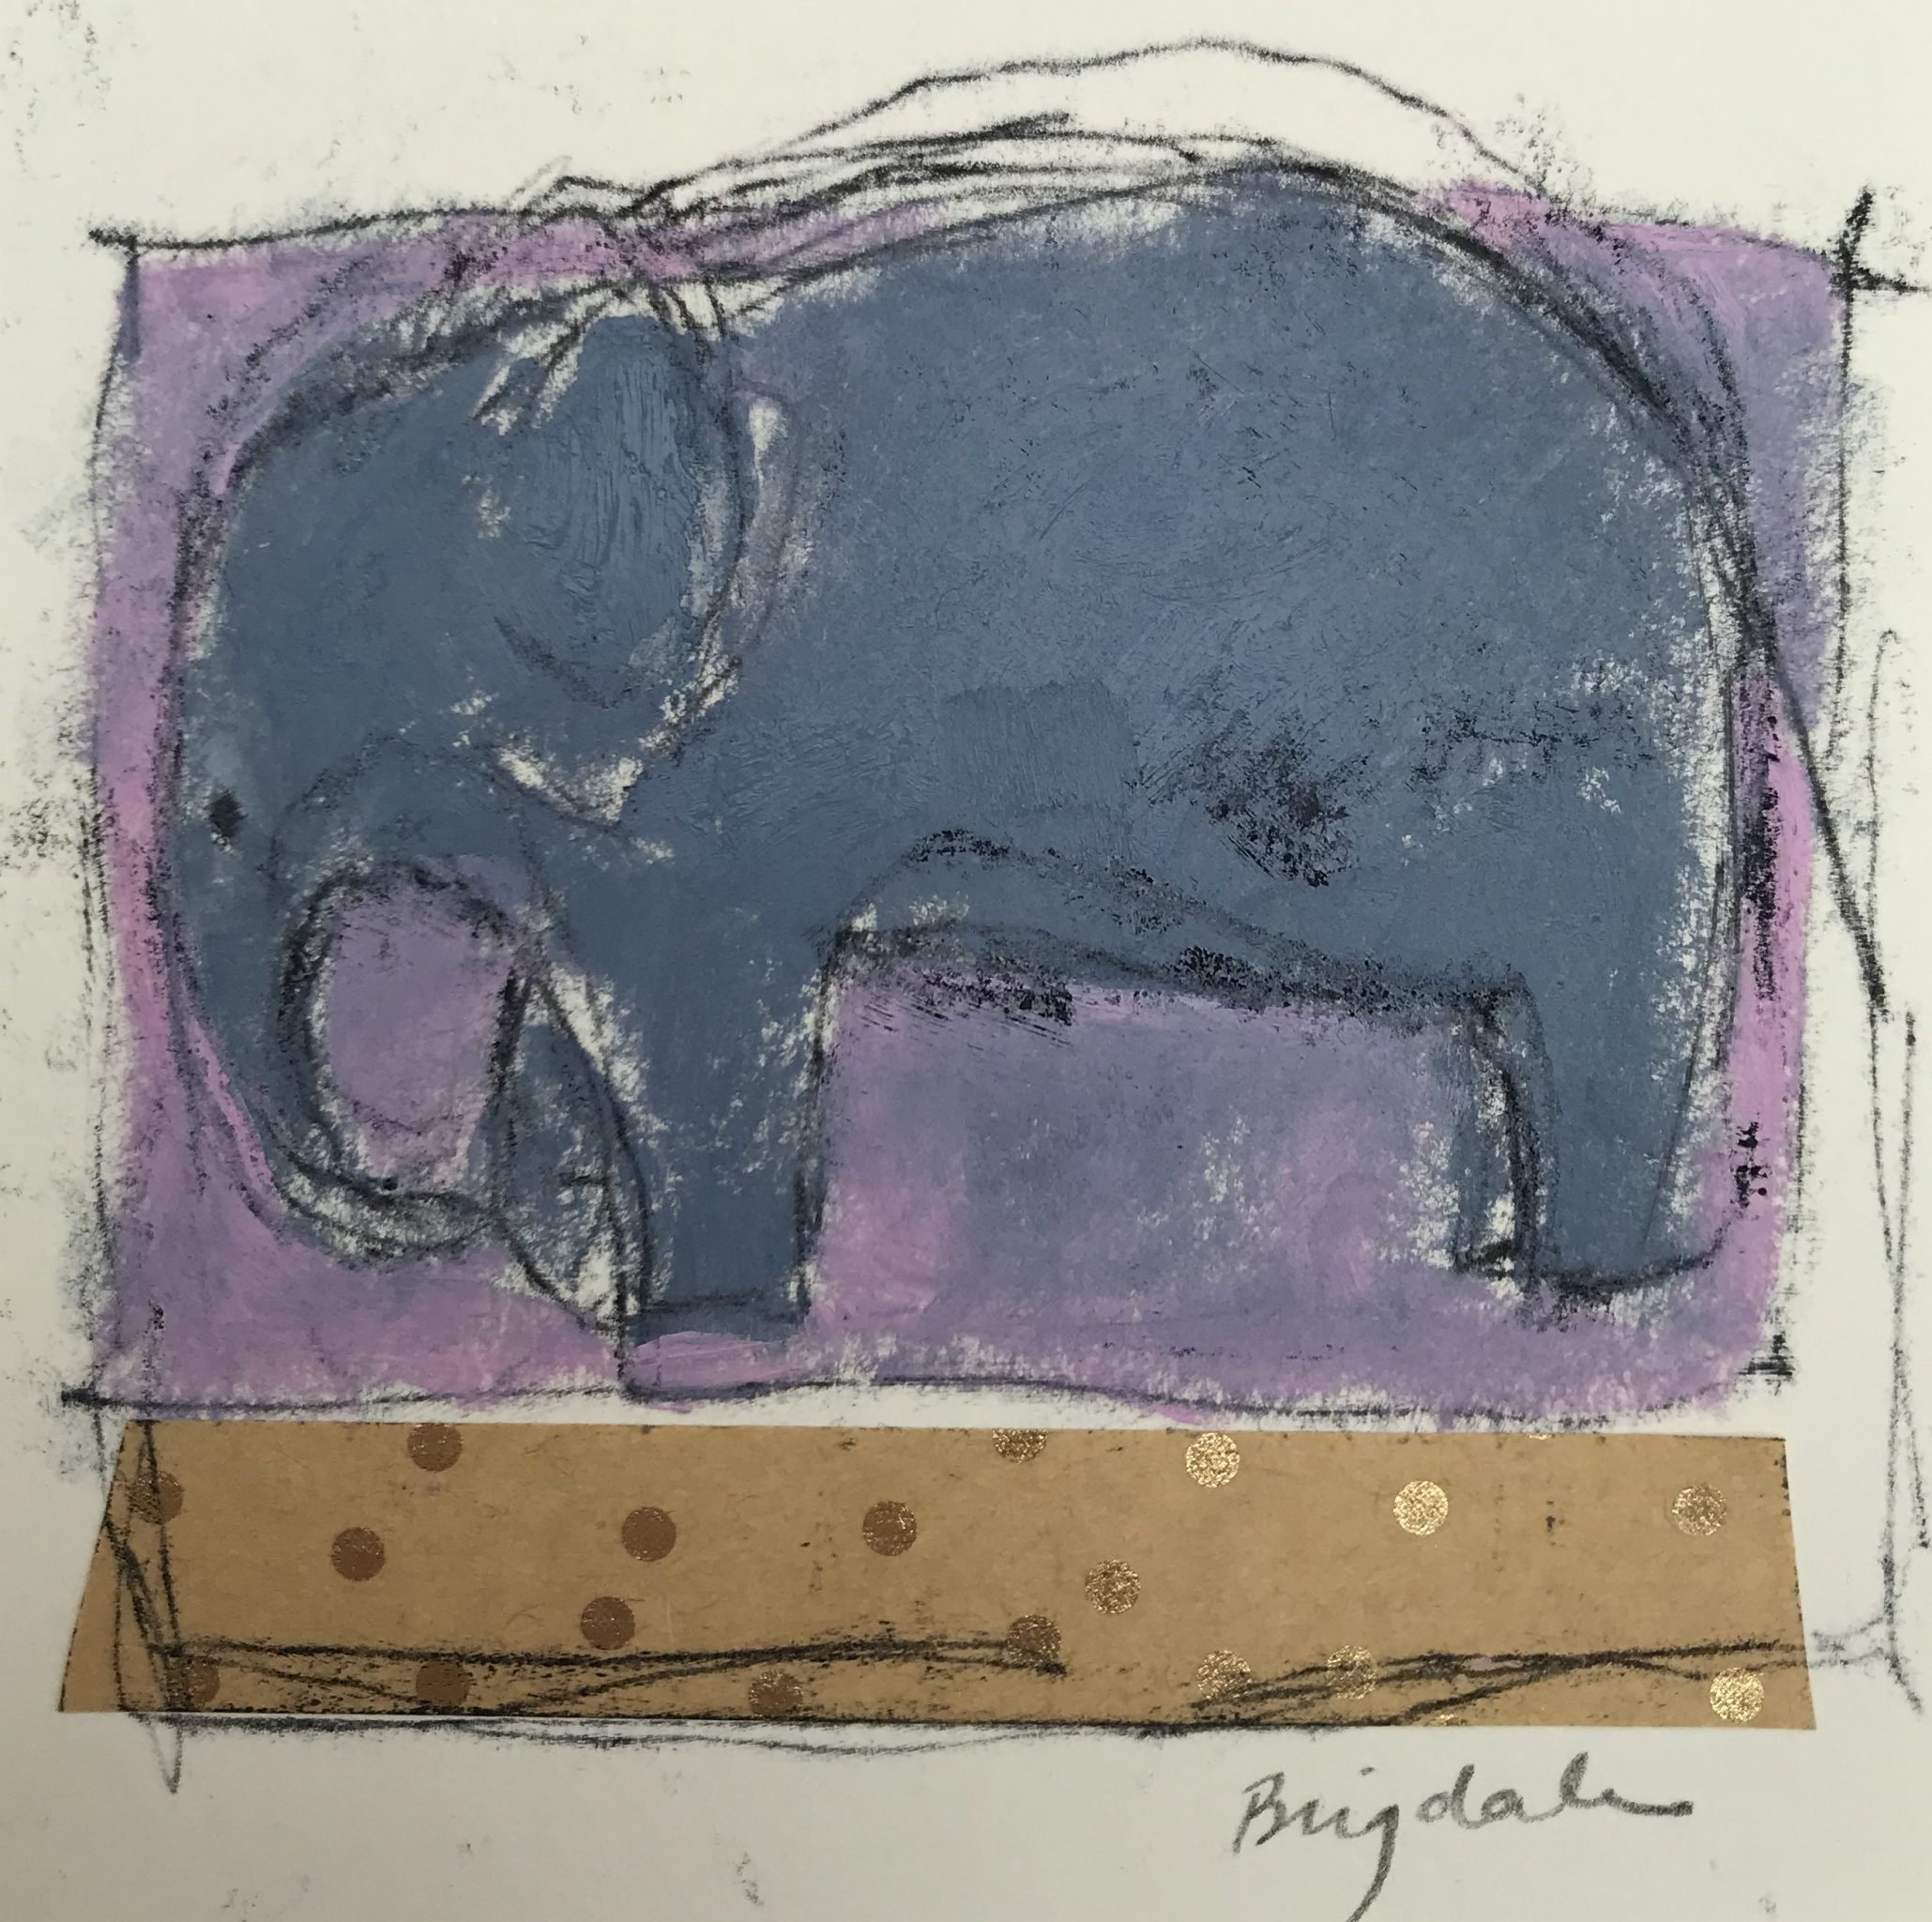 Collage and painting of a grey elephant, by Harriet Brigade